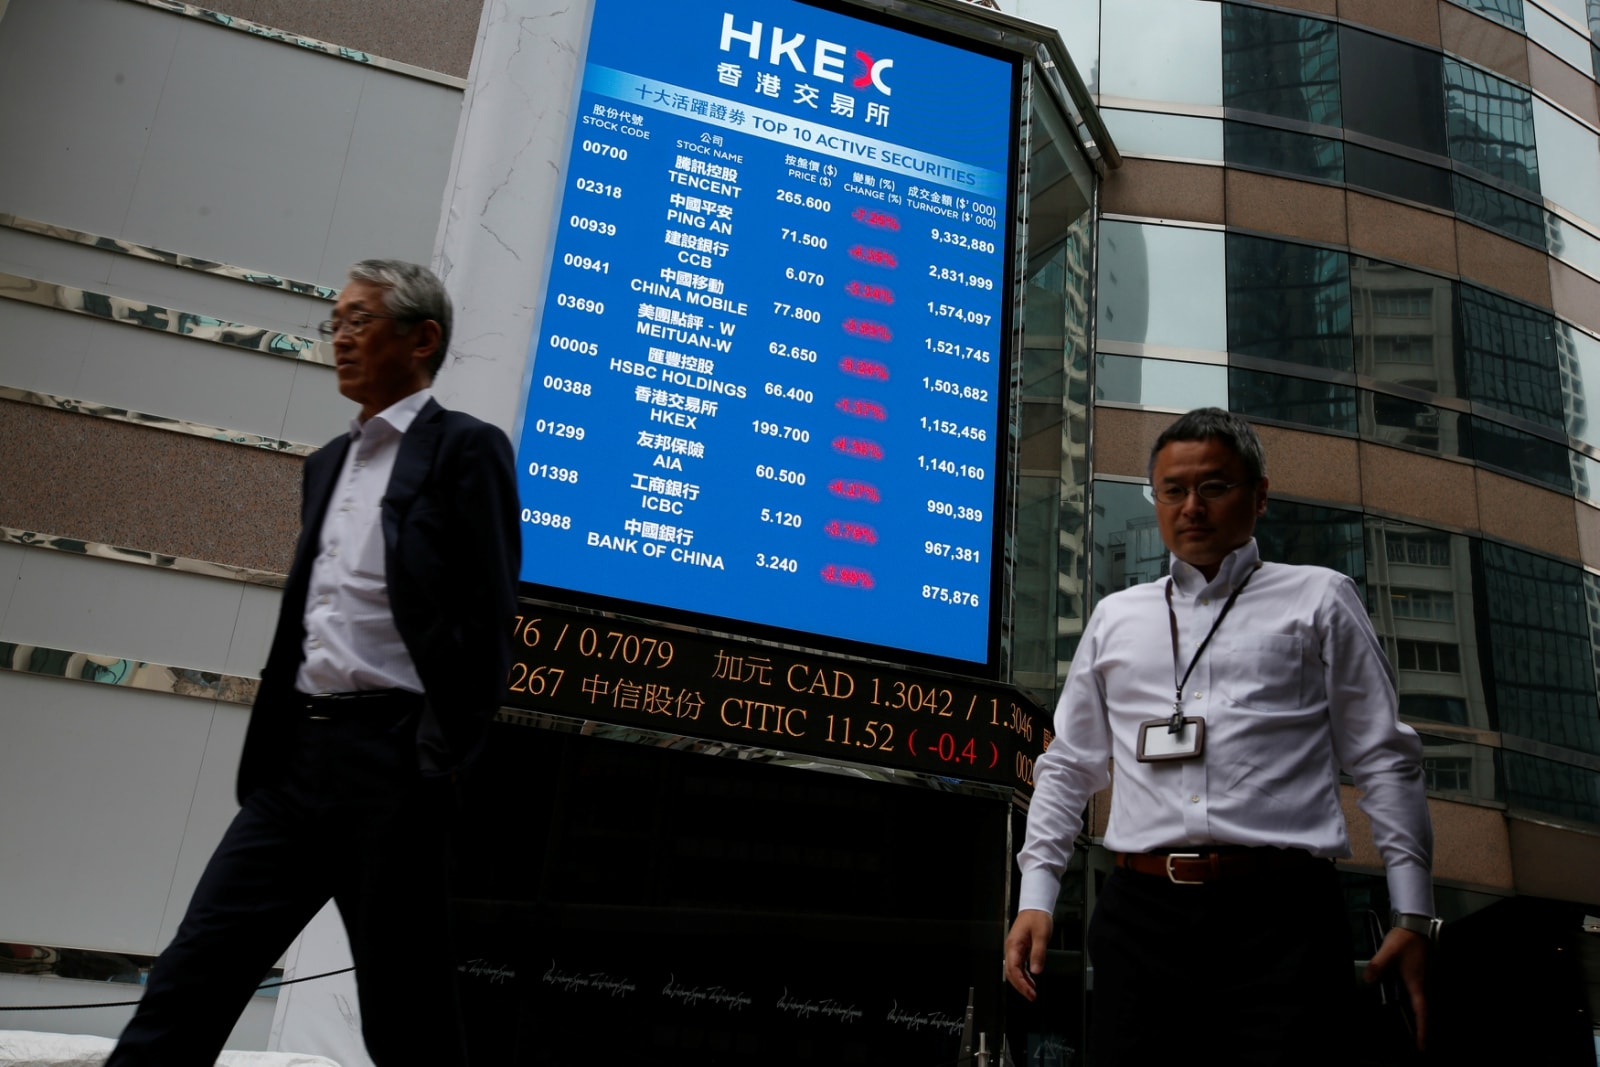 1. Asia: The Nikkei in Japan added 0.3 percent and the Topix rose 0.17 percent. In South Korea, the Kospi advanced 0.24 percent. Markets in the US were closed on Monday in observance of Memorial Day.  (Image: Reuters)